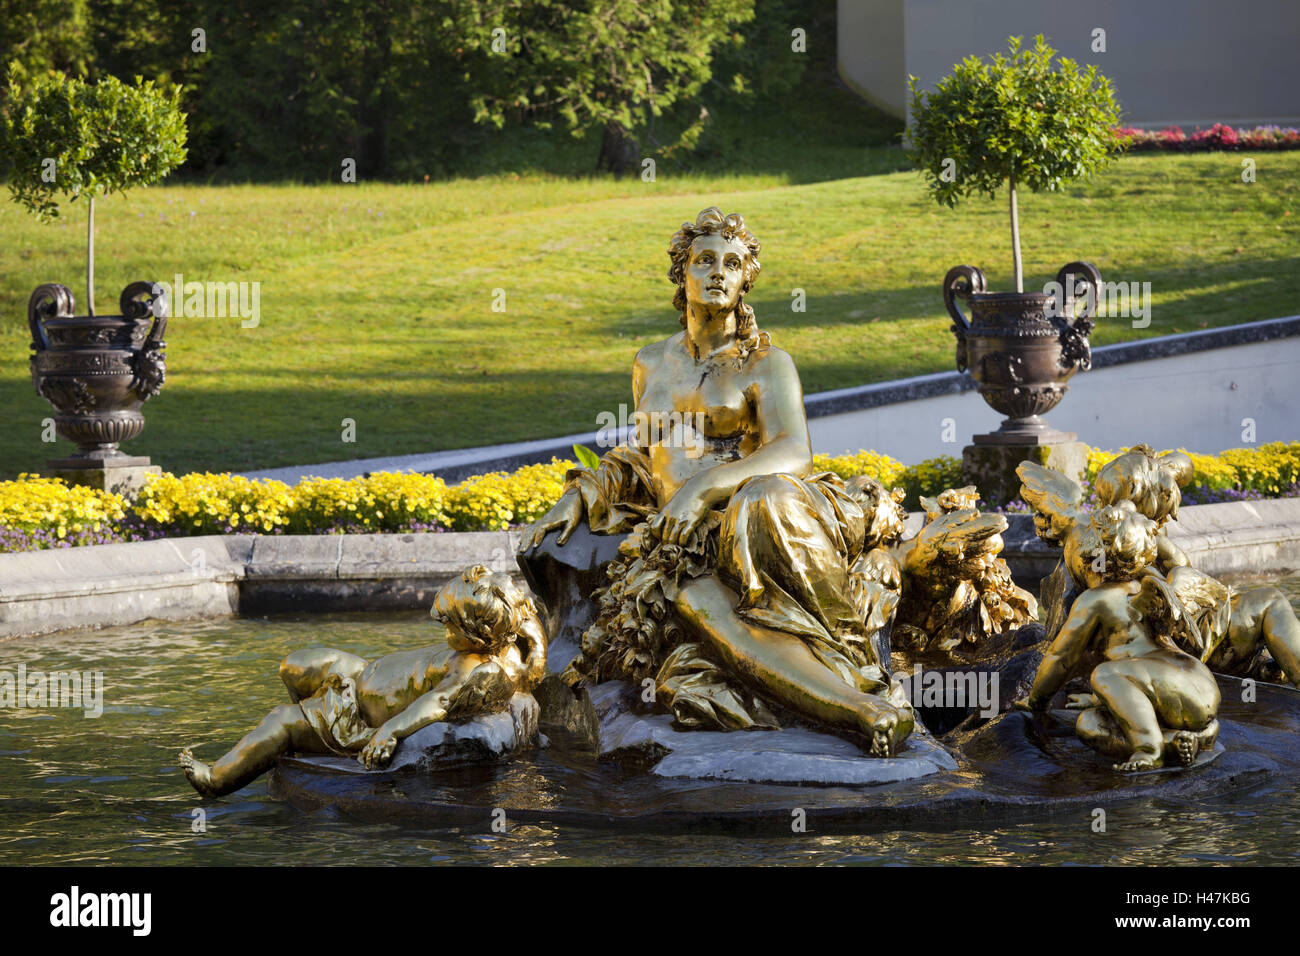 Germany, Bavaria, castle gentle court, statue, well, - Stock Image